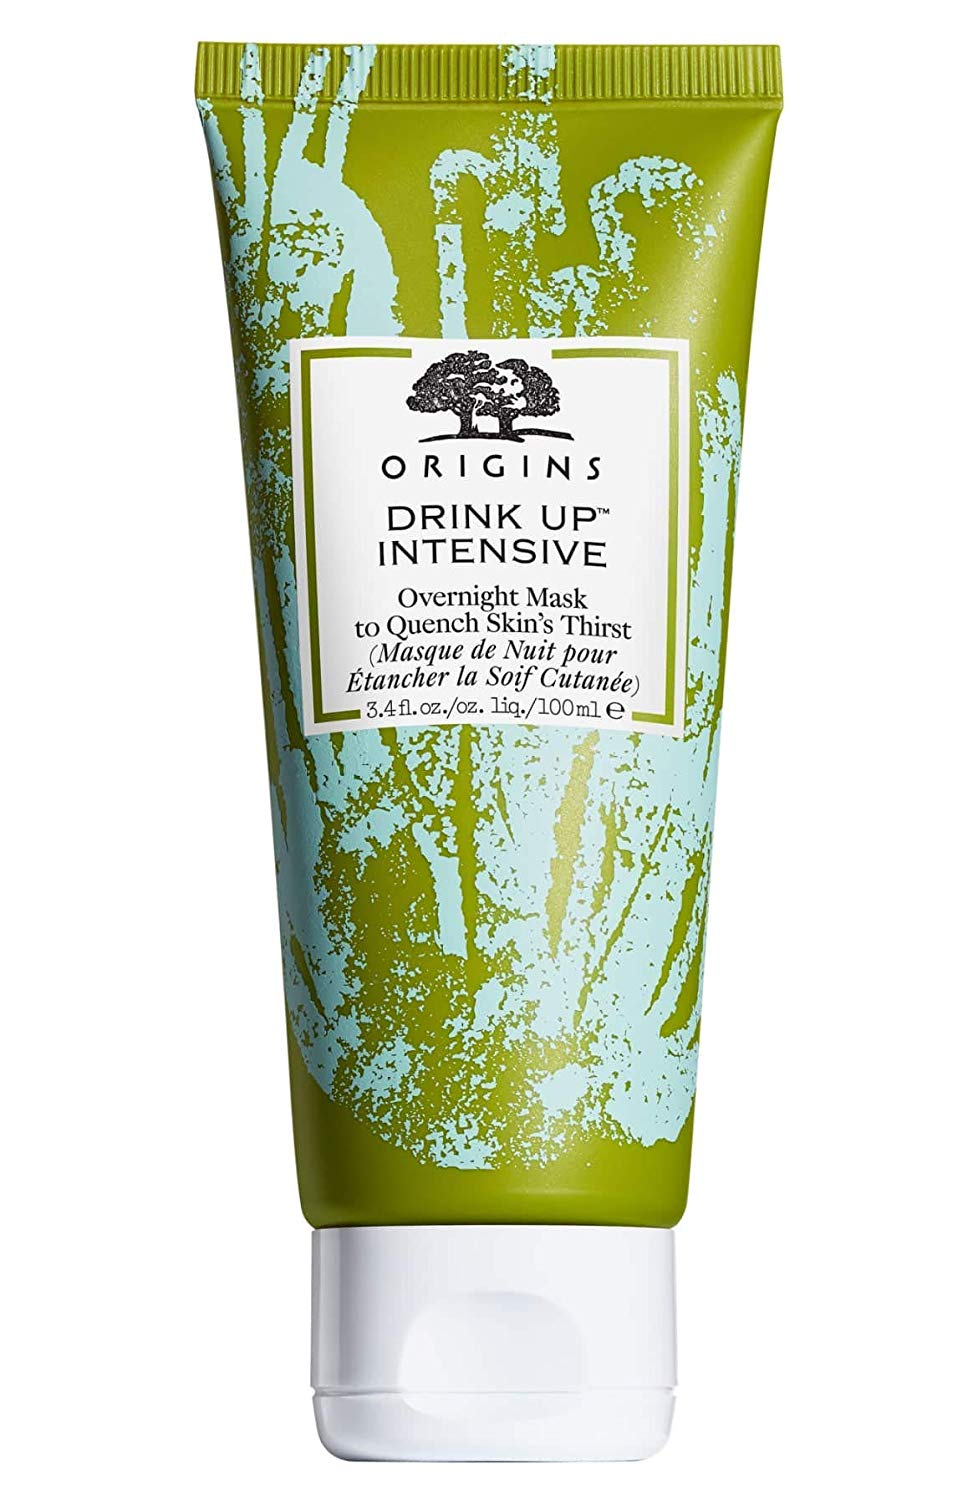 Roll over image to zoom in ORIGINS Drink Up-Intensive Overnight Mask to Quench Skin's Thirst